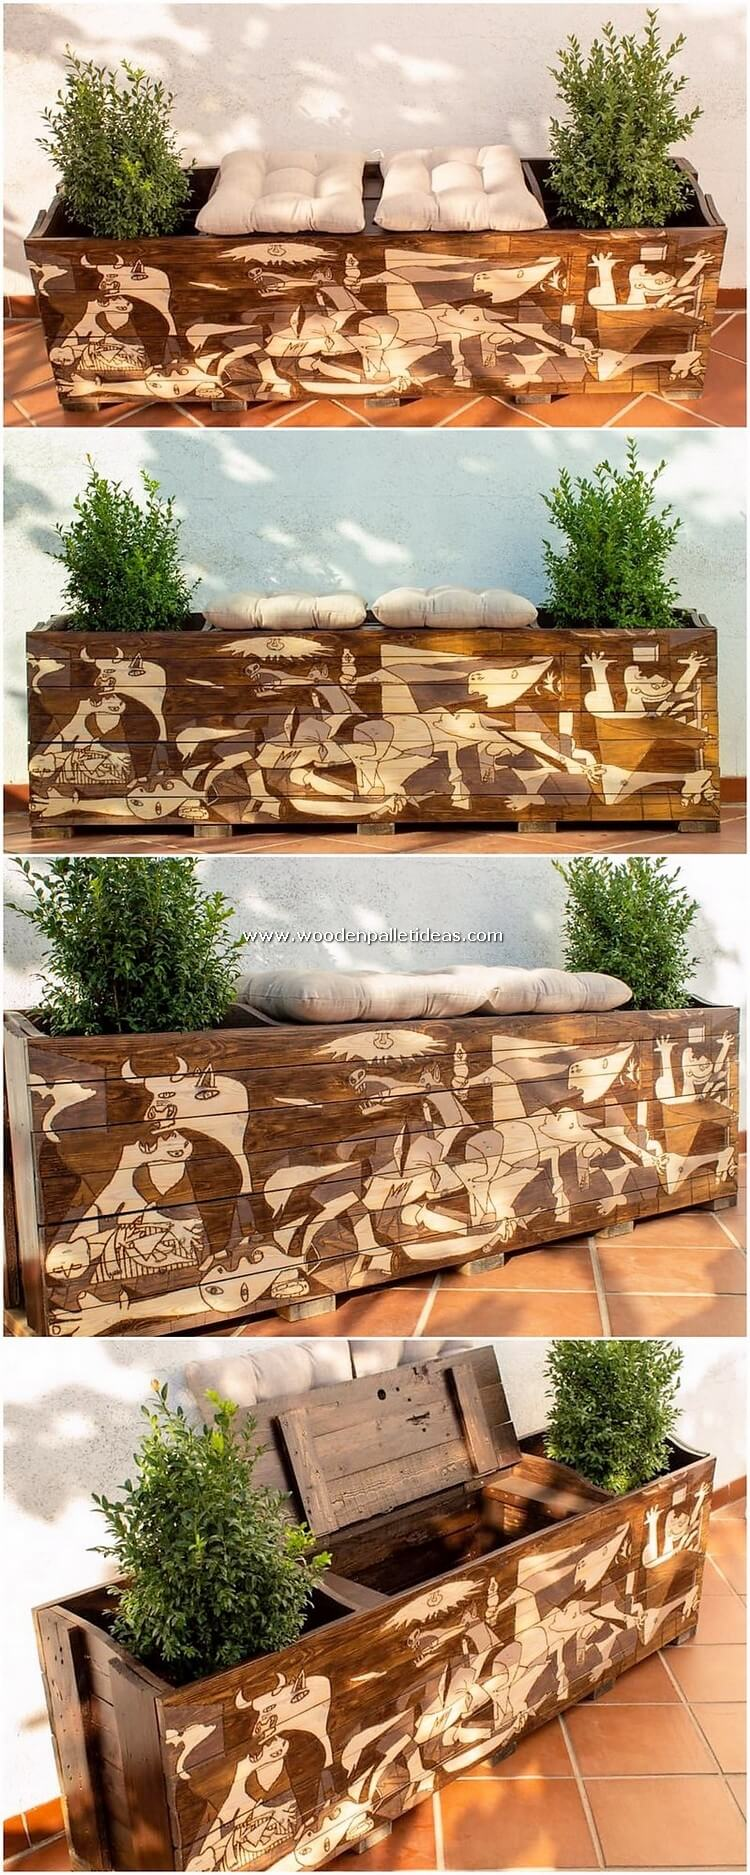 Pallet-Seat-with-Storage-and-Side-Planters